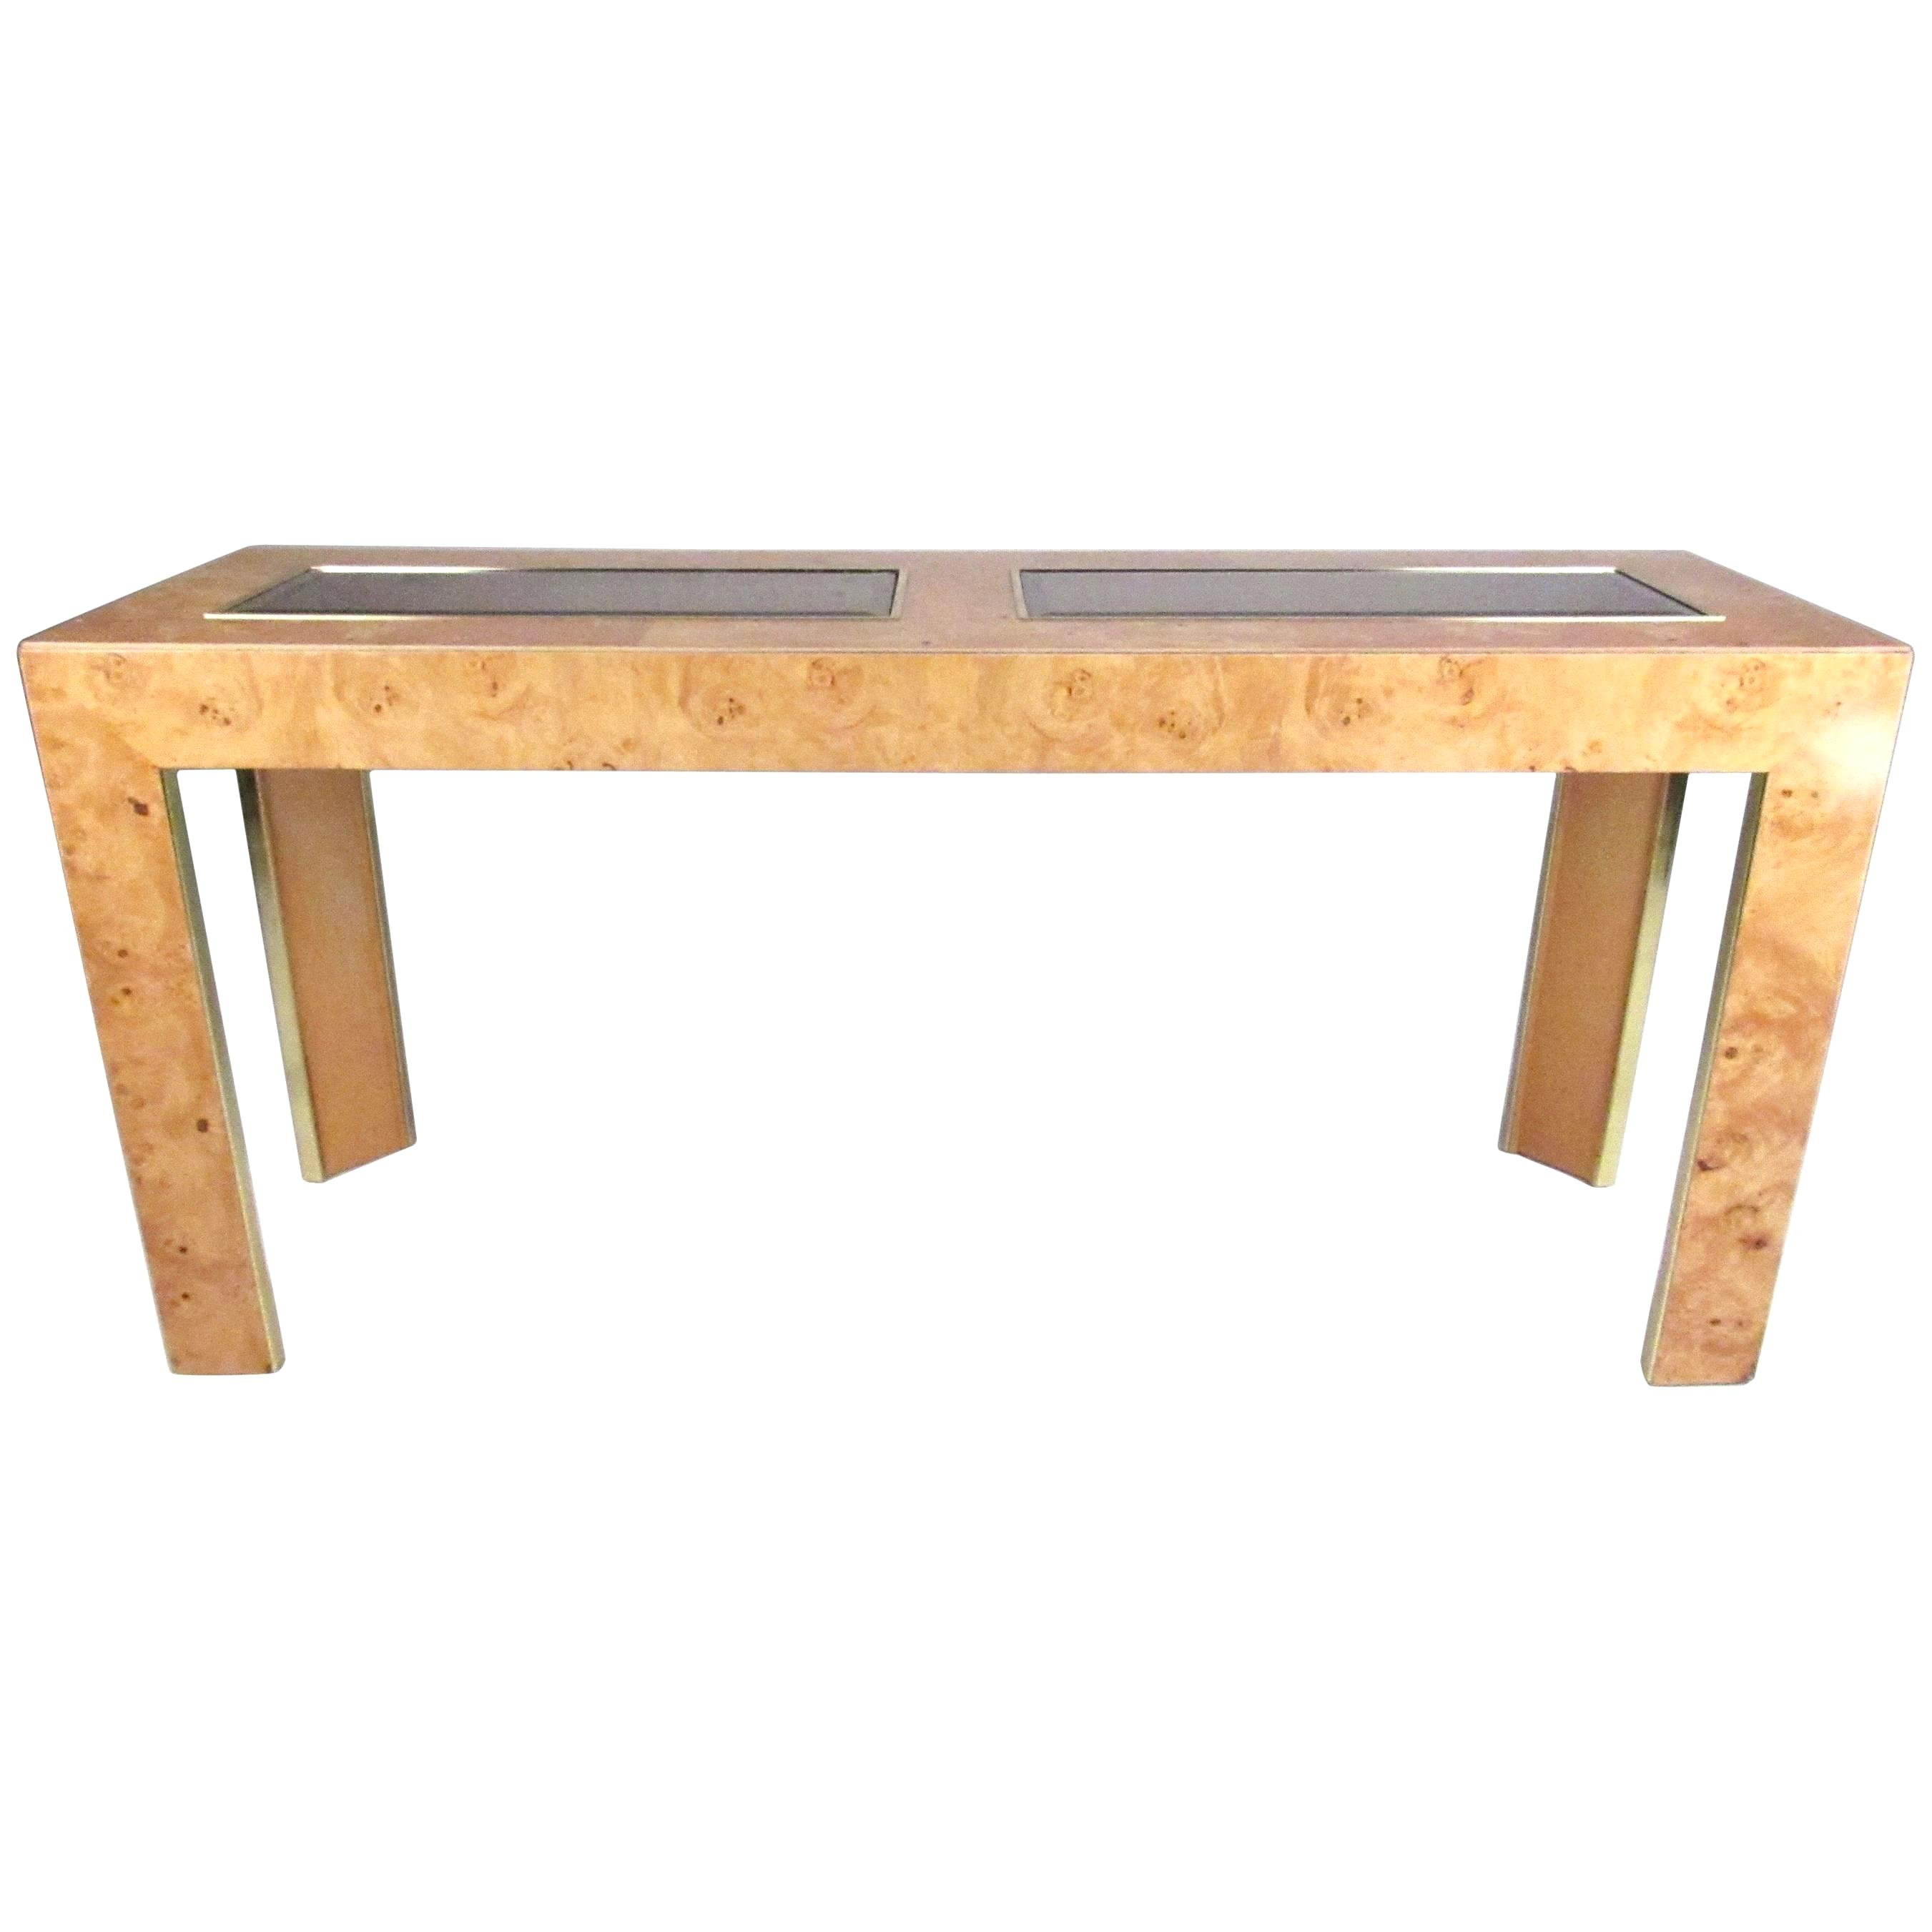 thomasville accent tables vintage modern burl wood console table nautical side parker furniture garden end large drop leaf dining laptop plastic outdoor with umbrella hole